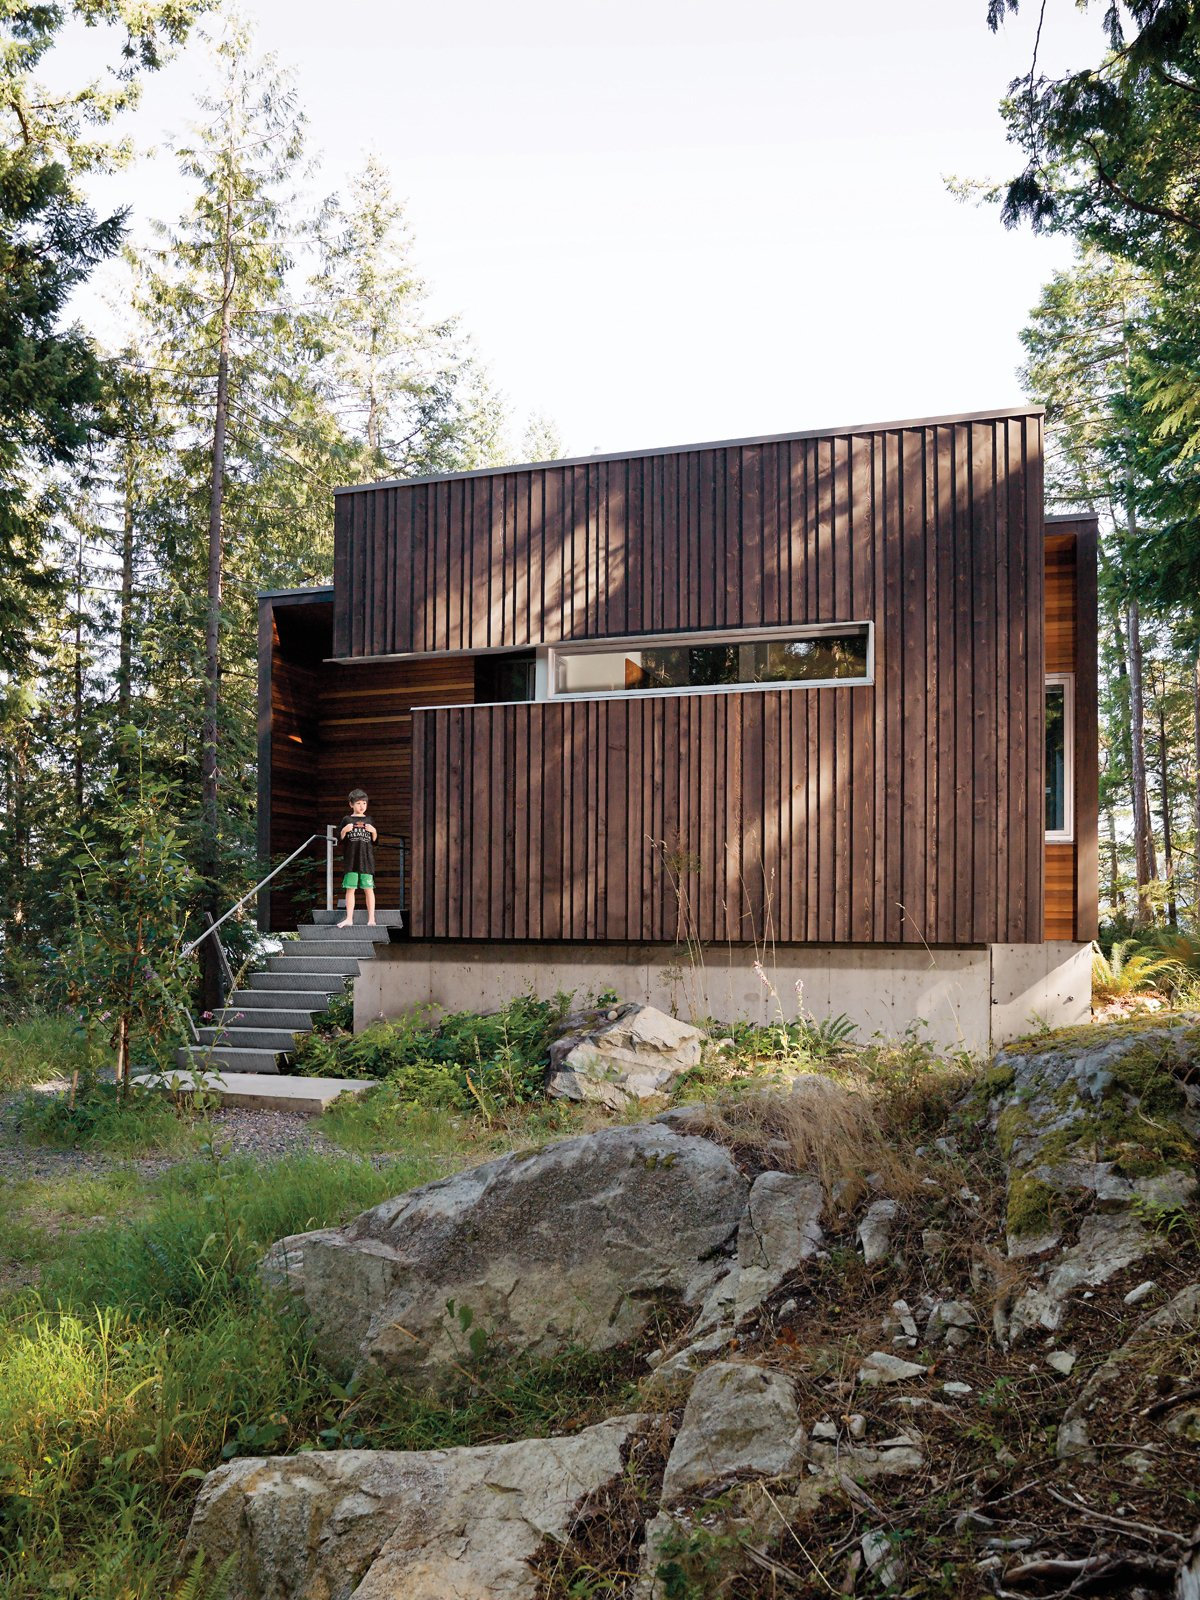 The facade is clad with beveled siding, stained dark to meld into the forest. Cabins & Hideouts by Stephen Blake